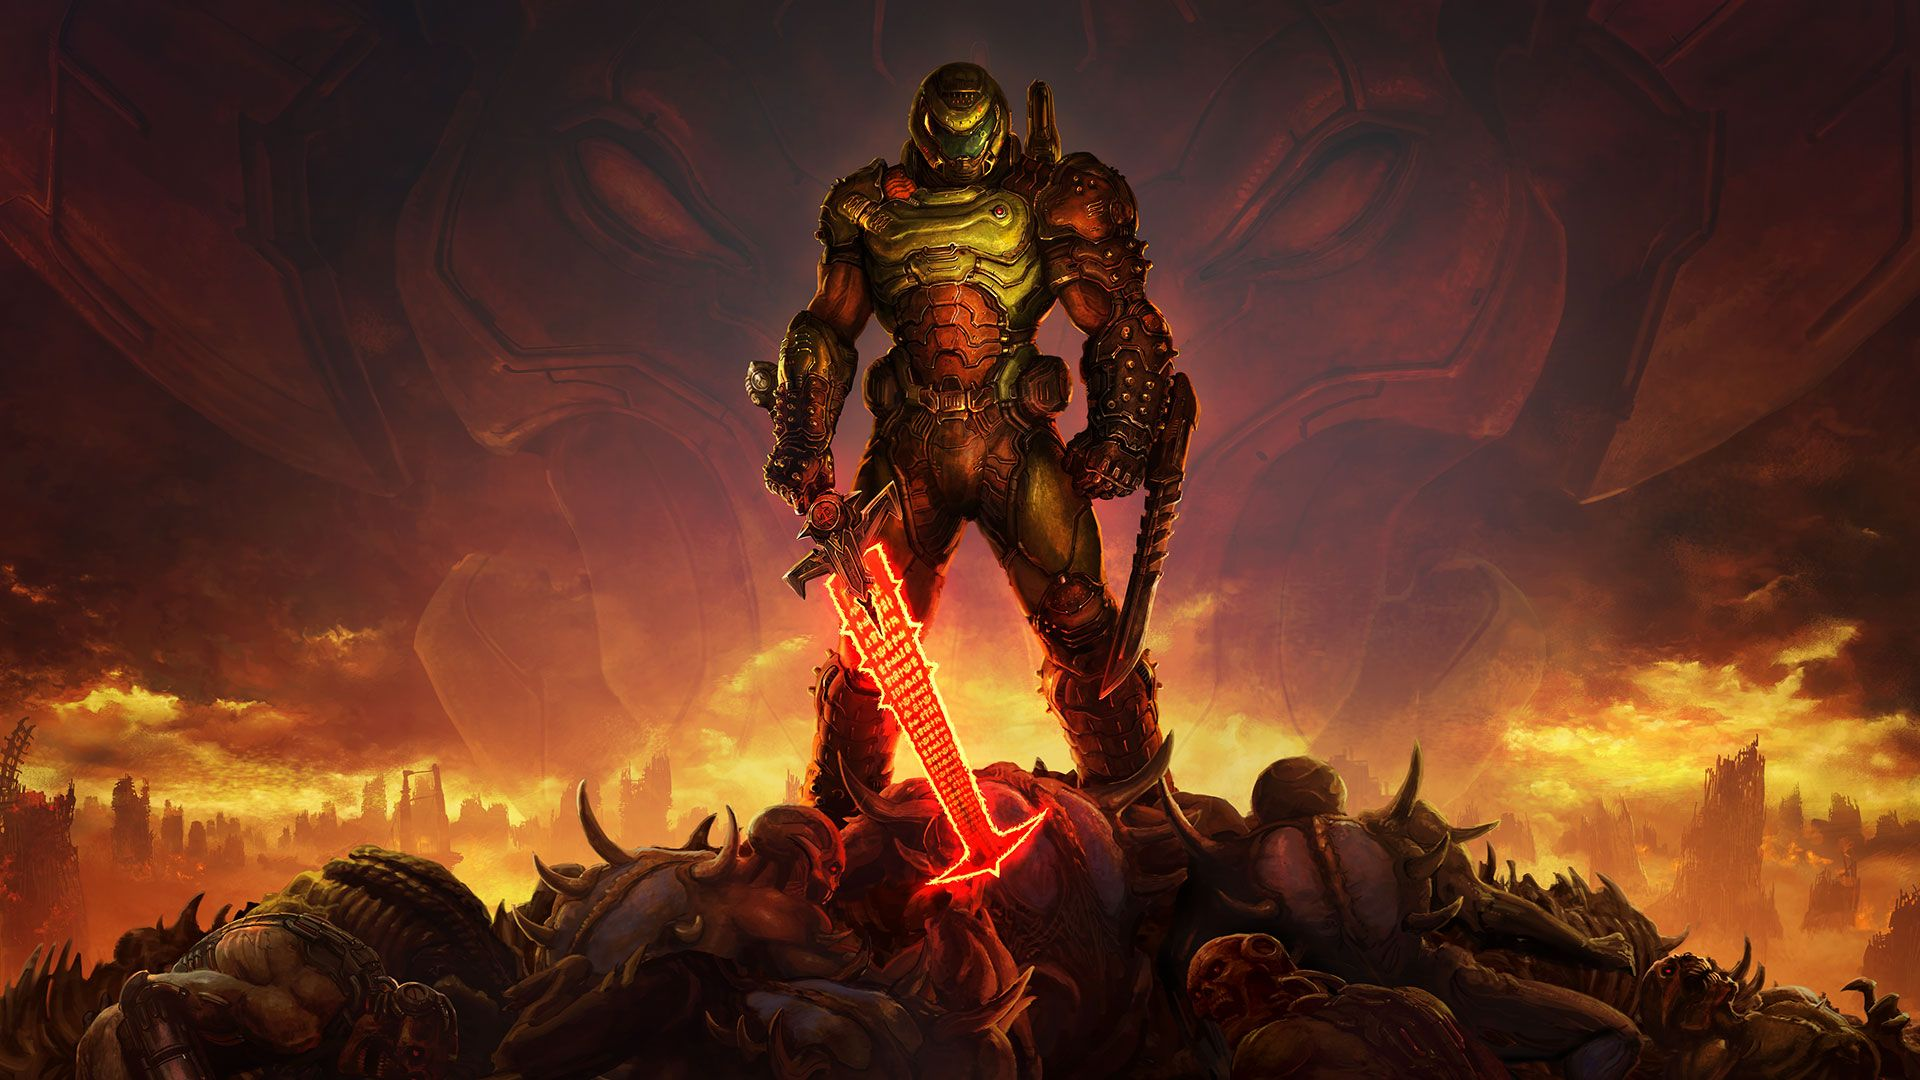 Doom Slayer Wallpapers Top Free Doom Slayer Backgrounds Wallpaperaccess